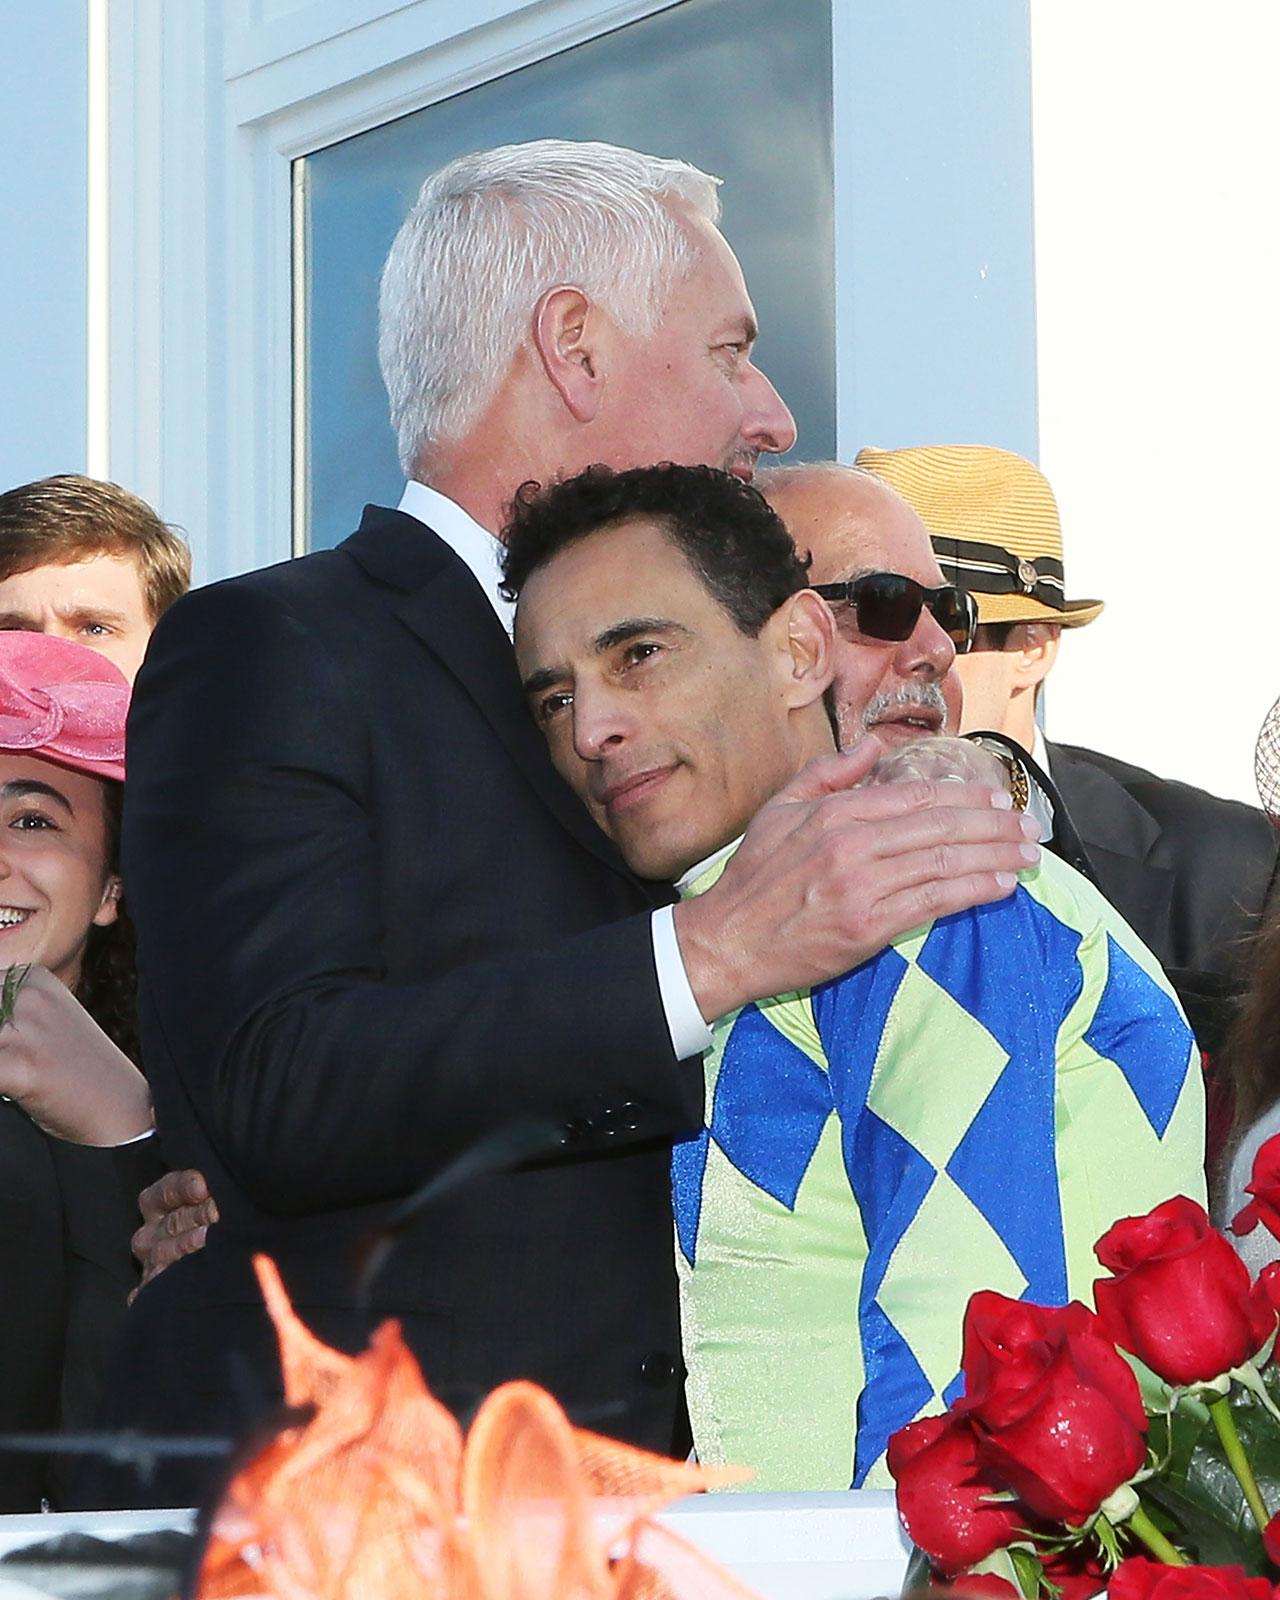 ALWAYS-DREAMING----The-Kentucky-Derby-Gr-1---143rd-Running---05-06-17---R12---CD---Todd-Pletcher---John-Velazquez-Hug-1